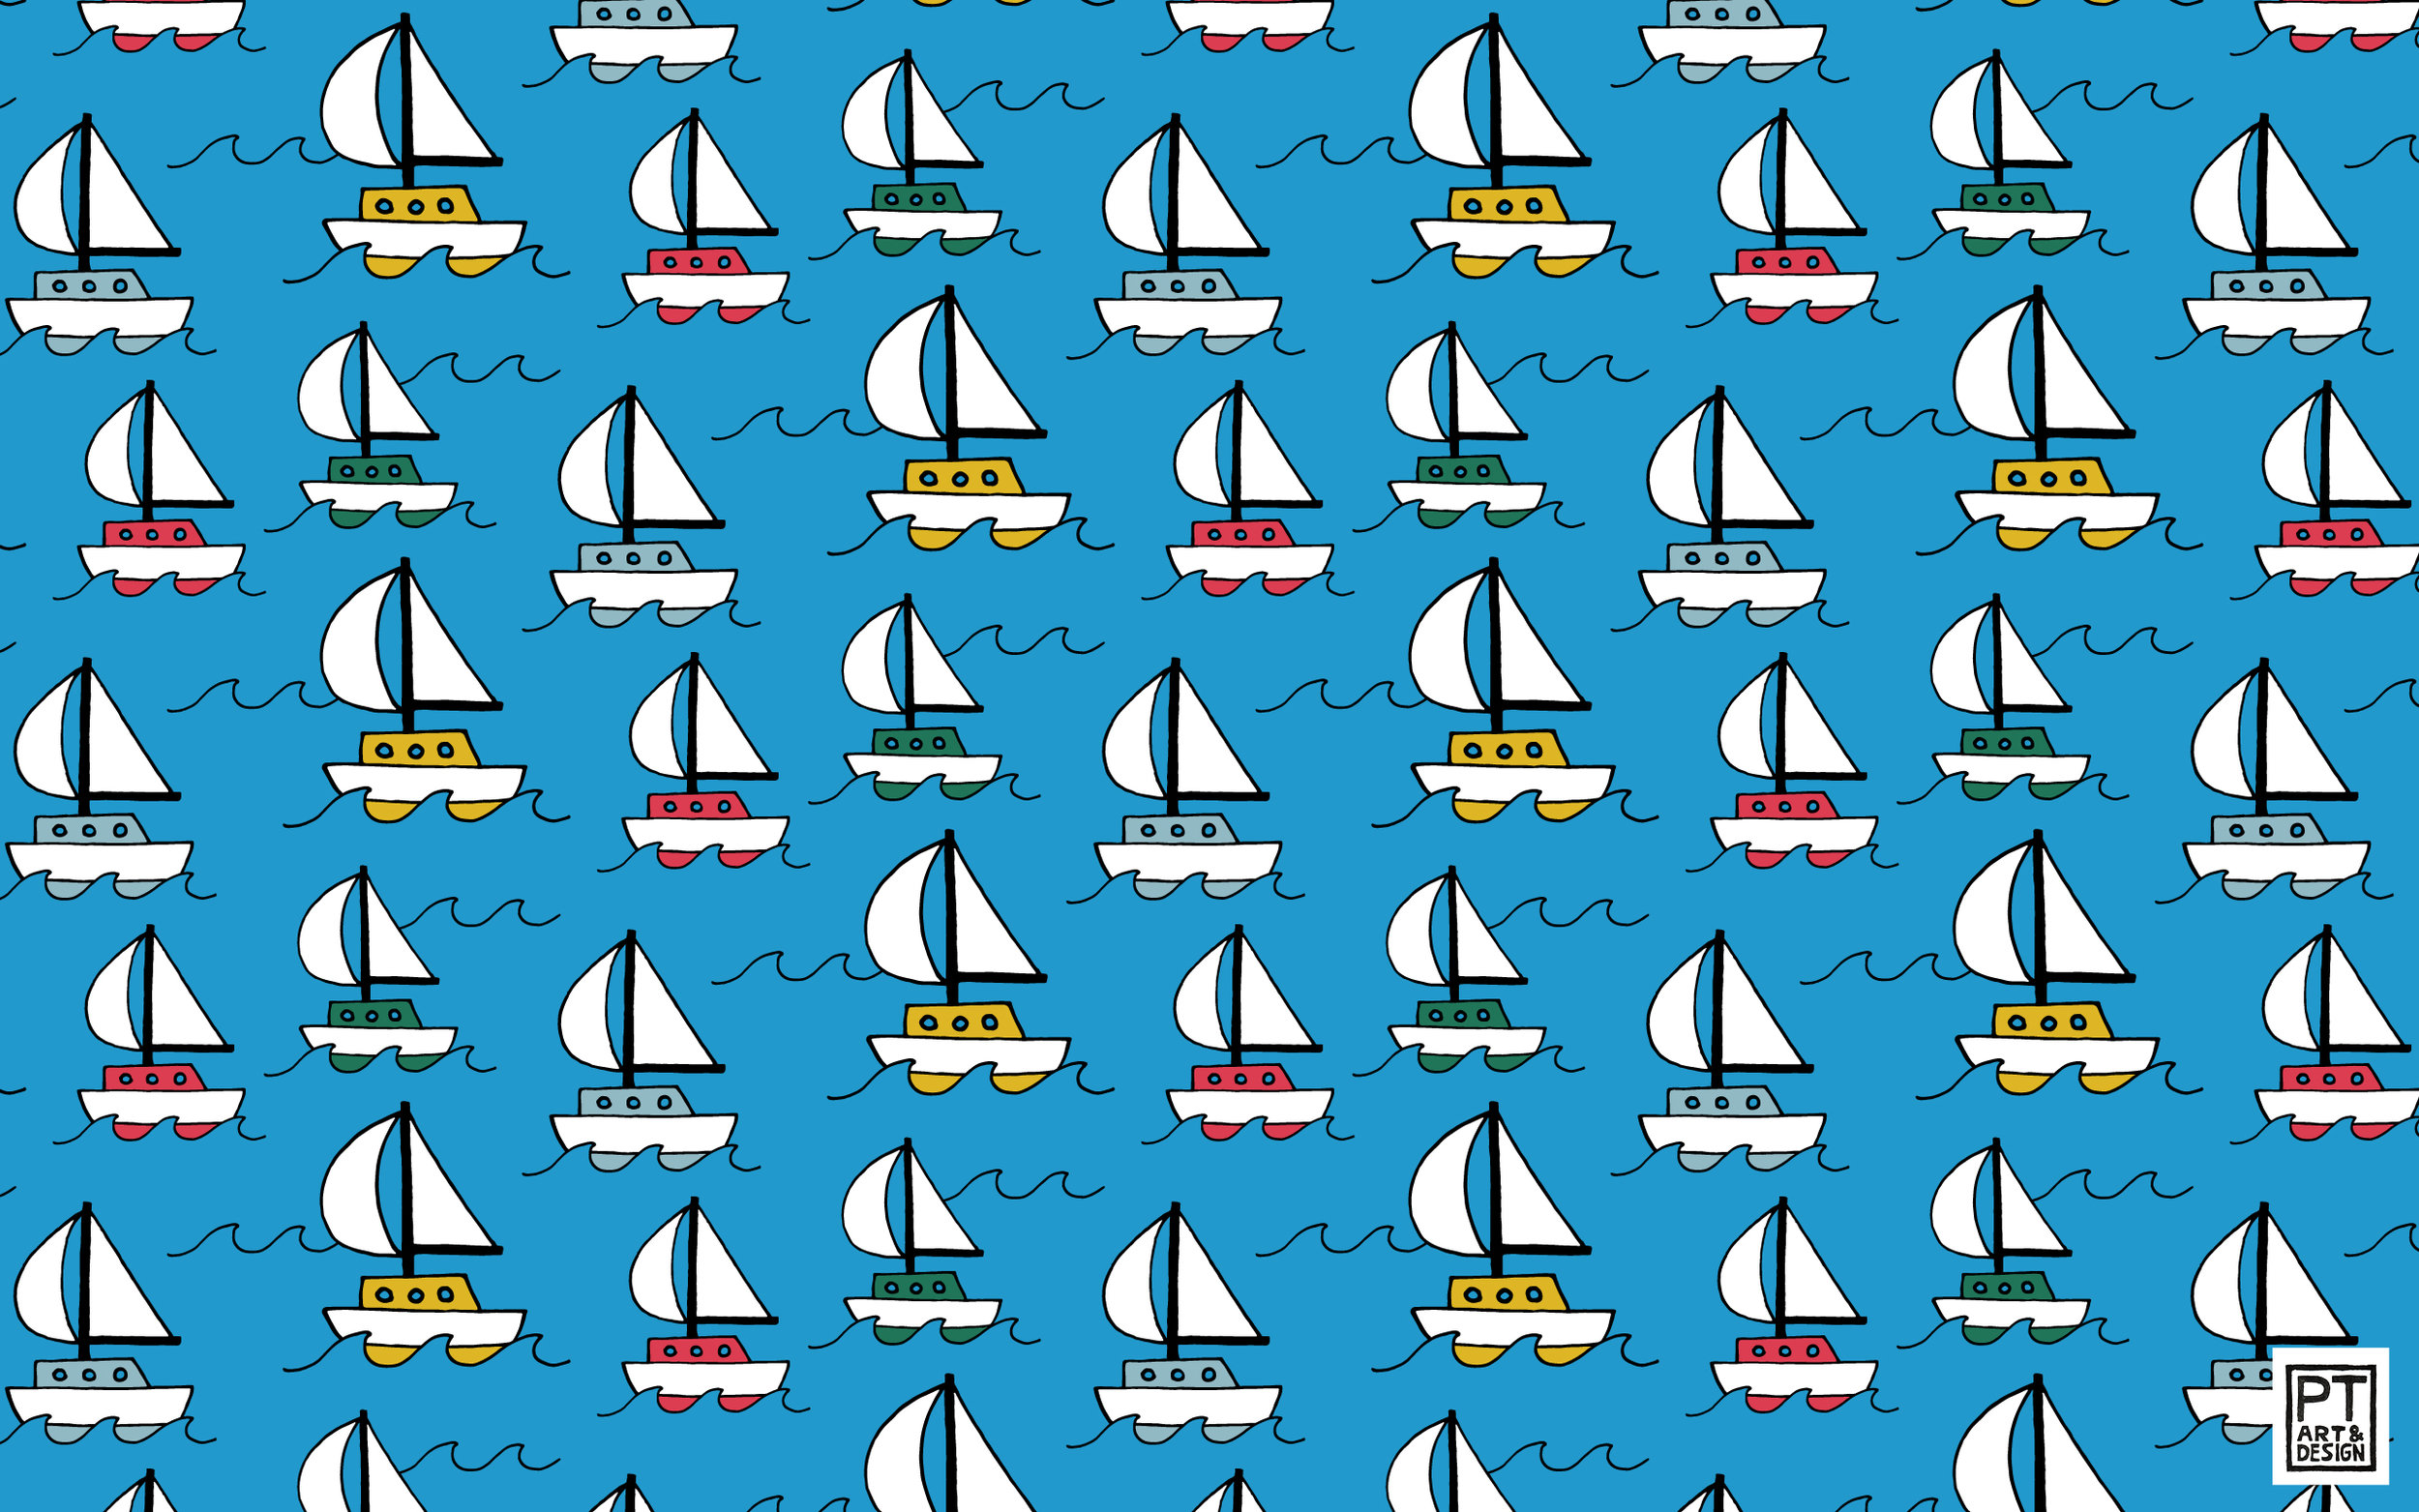 Colorful sailboats on a blue background